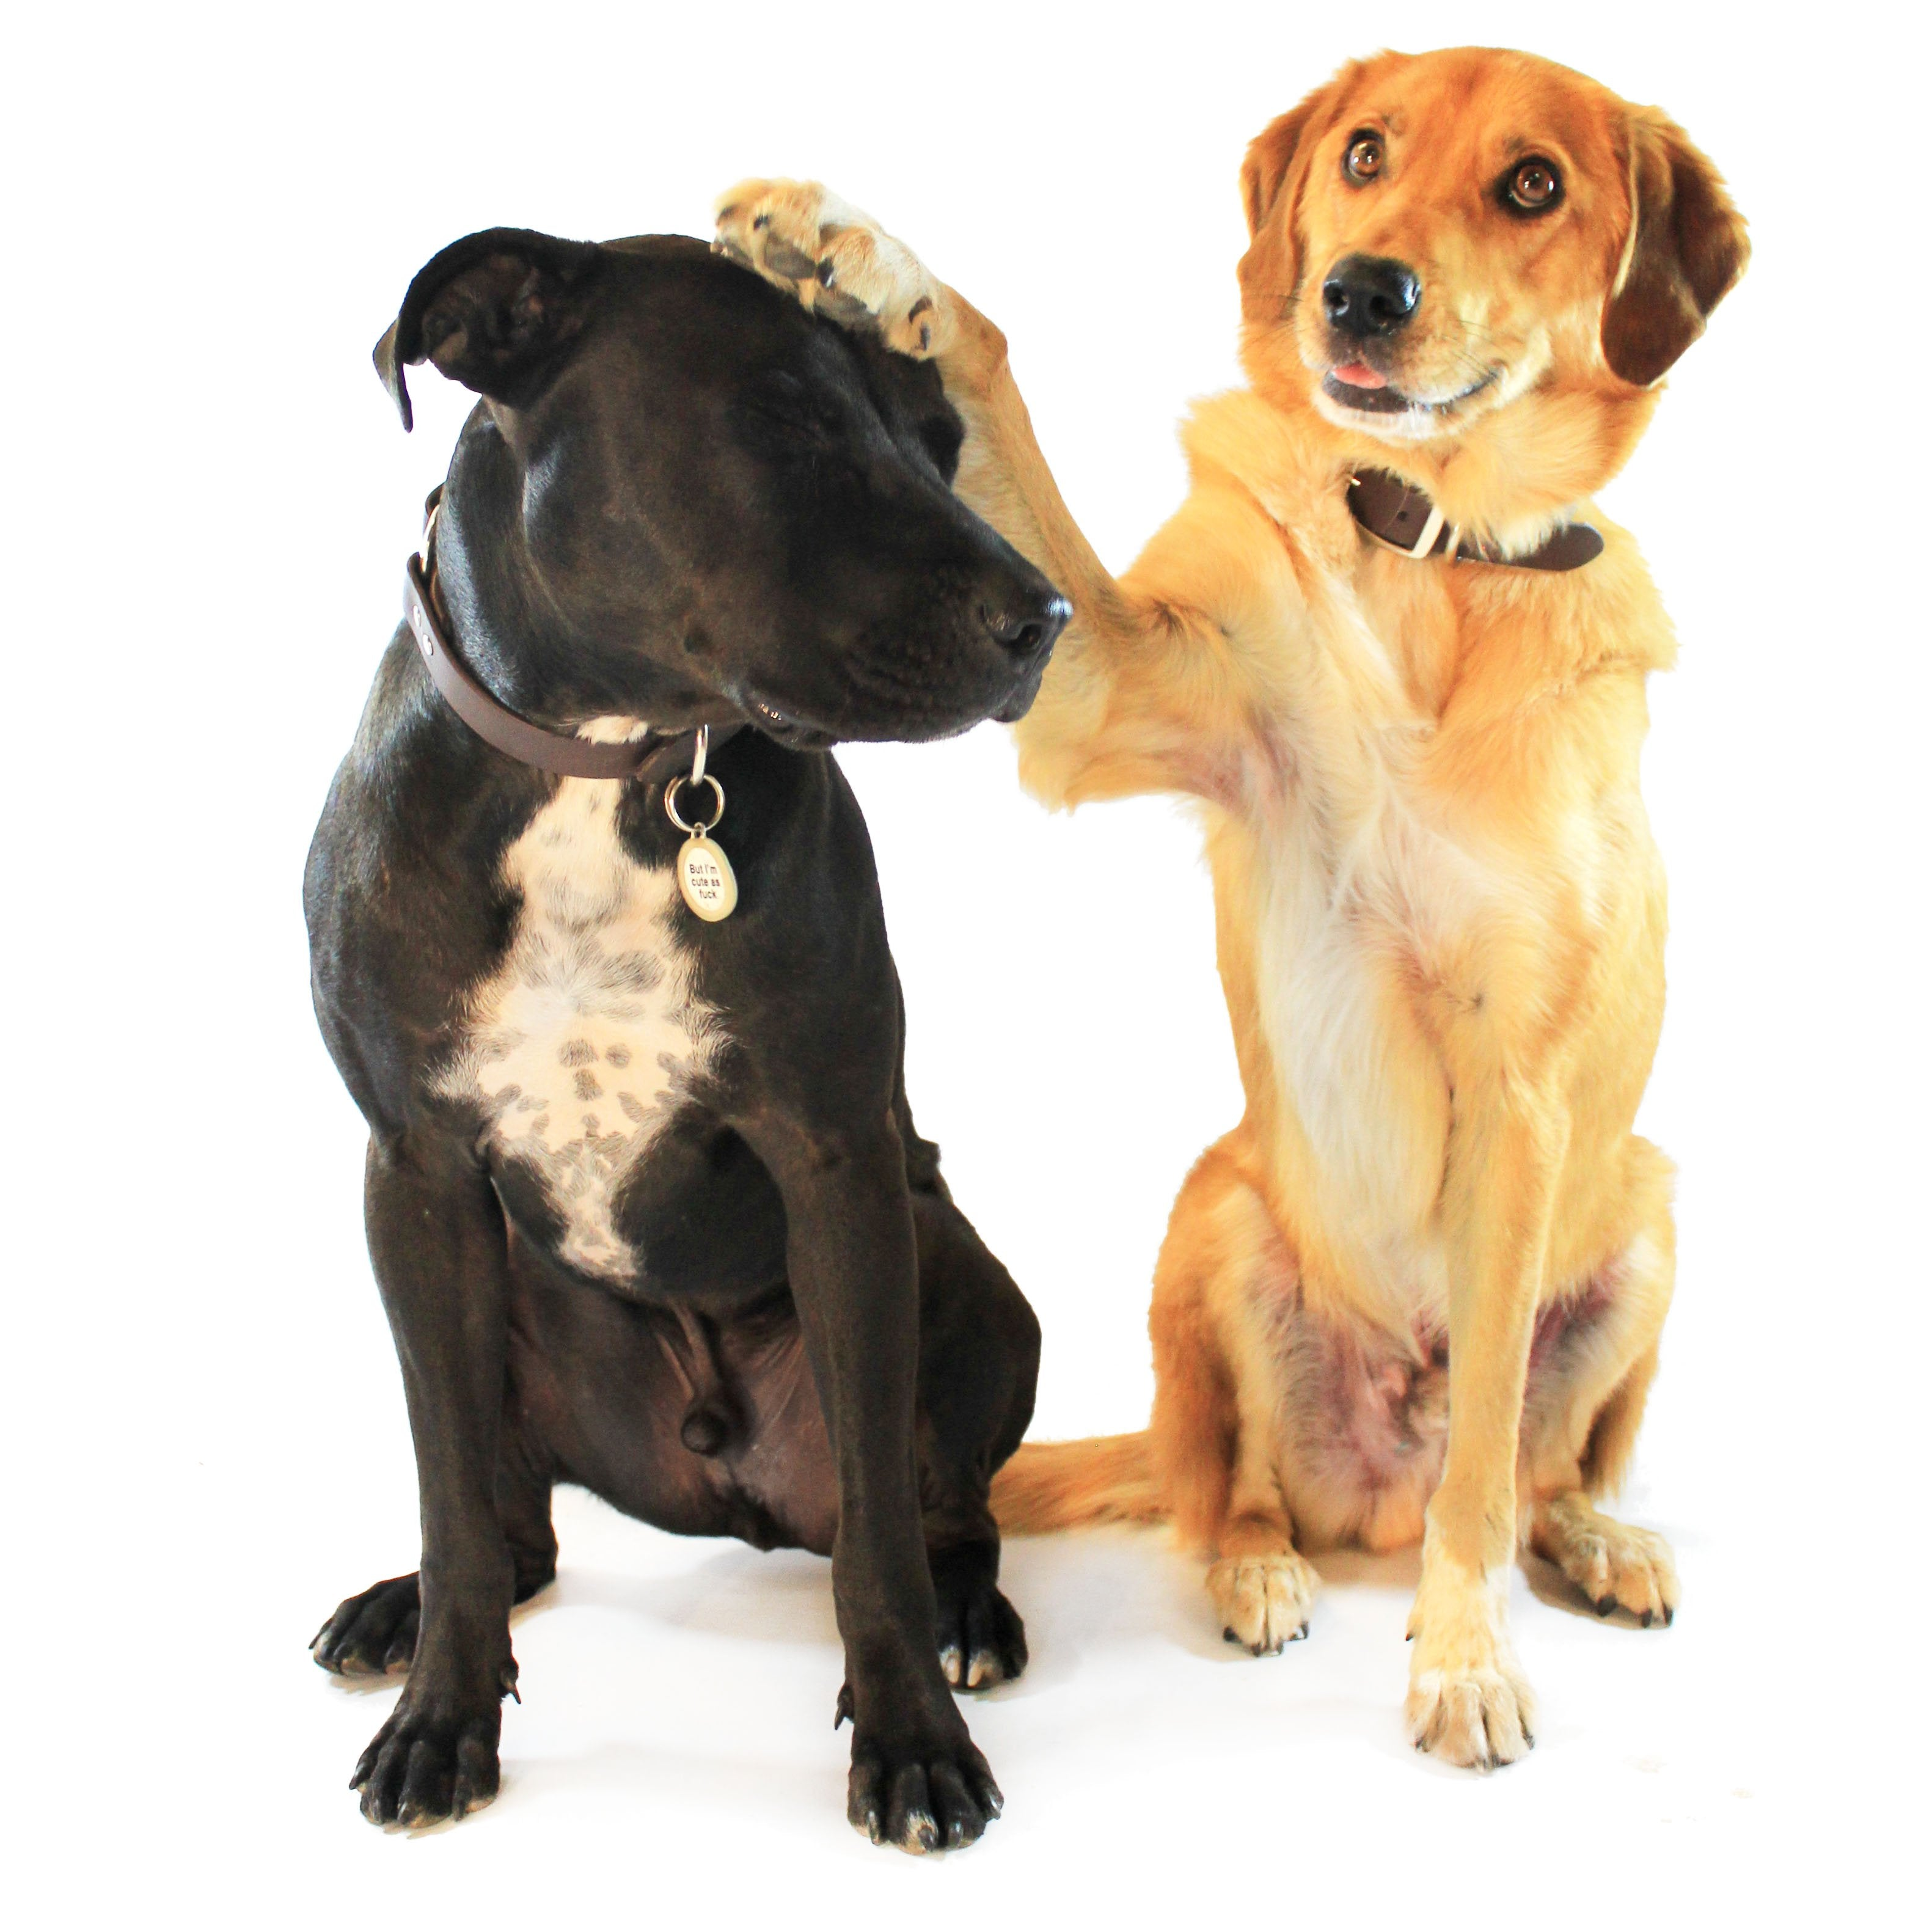 How to Train a Dog Not to Bark: Why Do Dogs Bark?